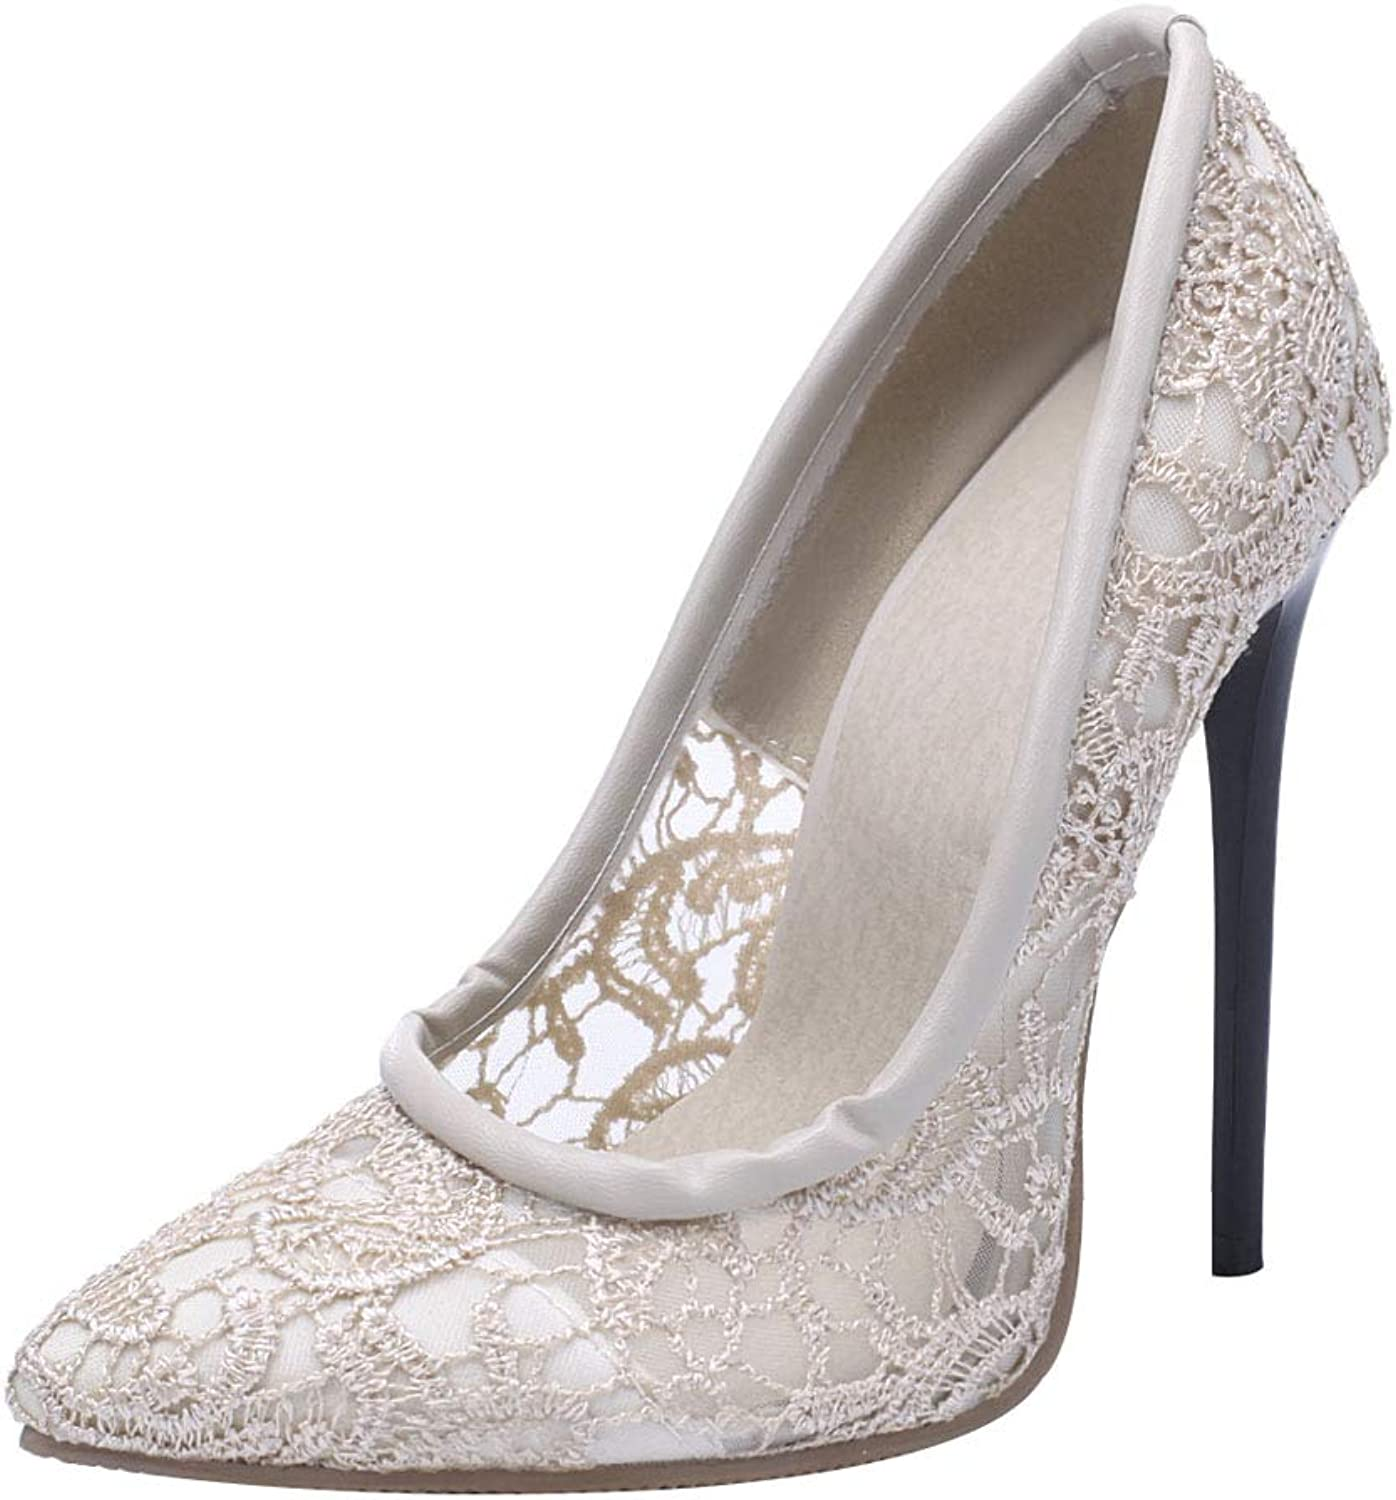 KIKIVA Women Lace High Heel Pumps Pointed Toe Stiletto Slip On Court shoes